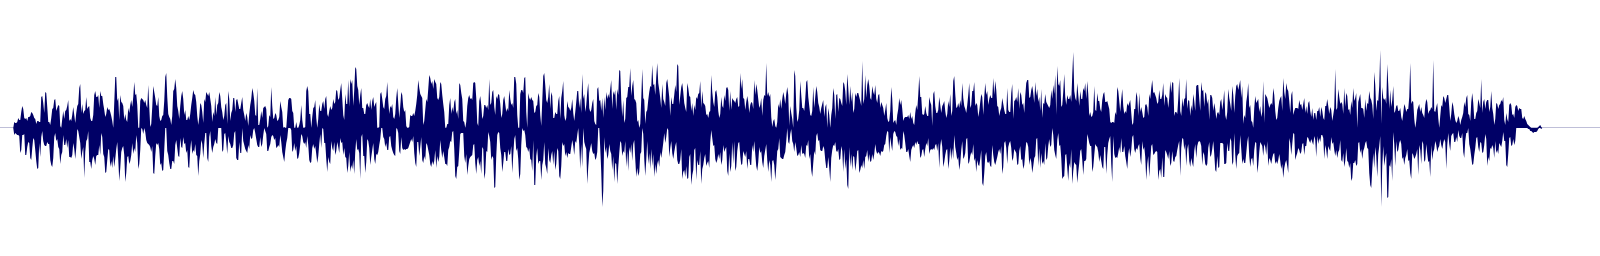 waveform of track #100285